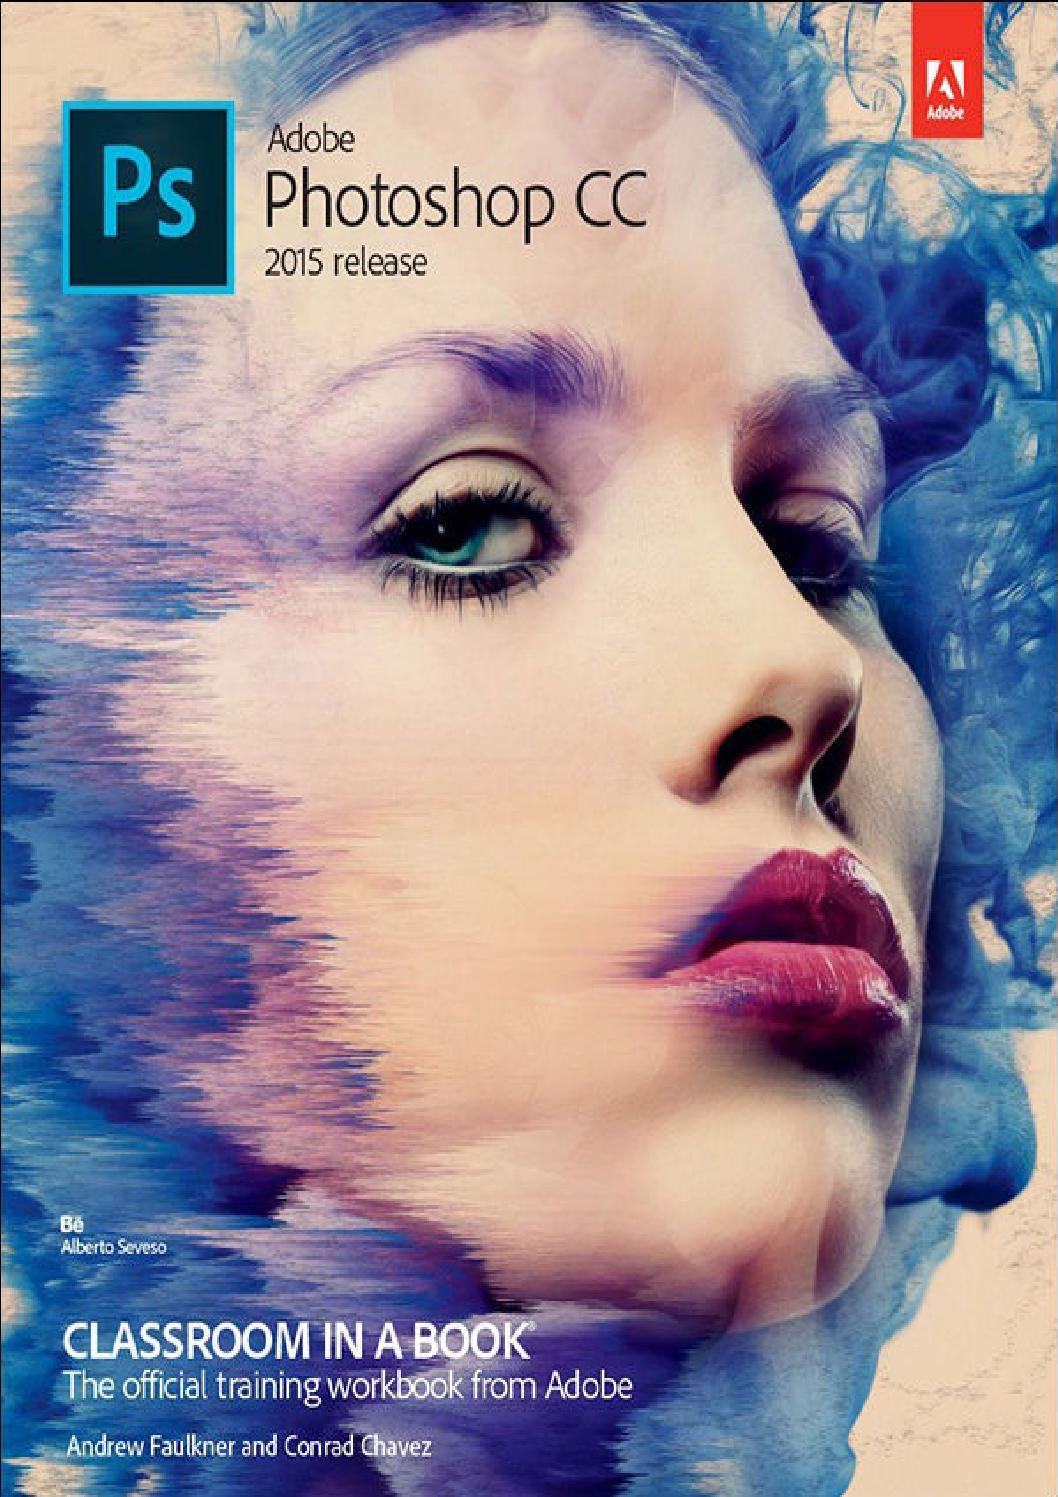 Adobe photoshop cc classroom in a book 2015 by andrs arenas issuu baditri Gallery